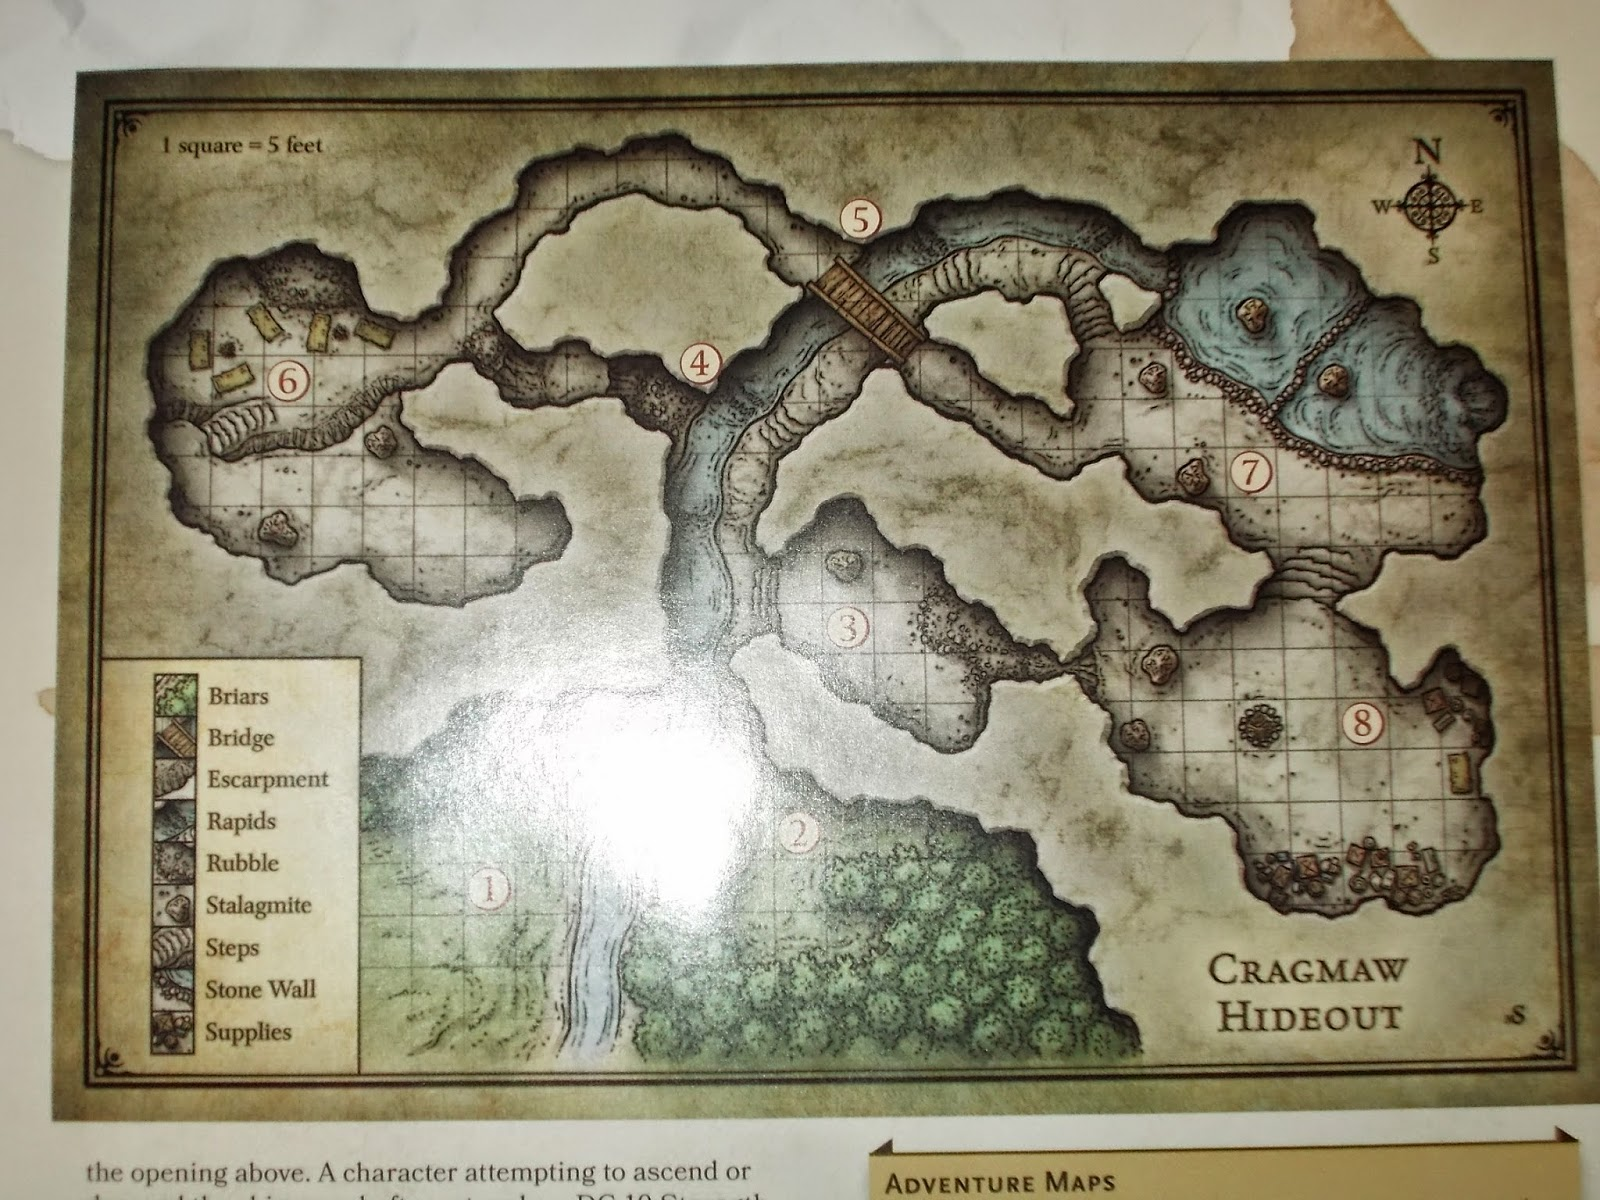 graphic regarding Cragmaw Hideout Printable Map identify The Ghost with out a S: August 2014